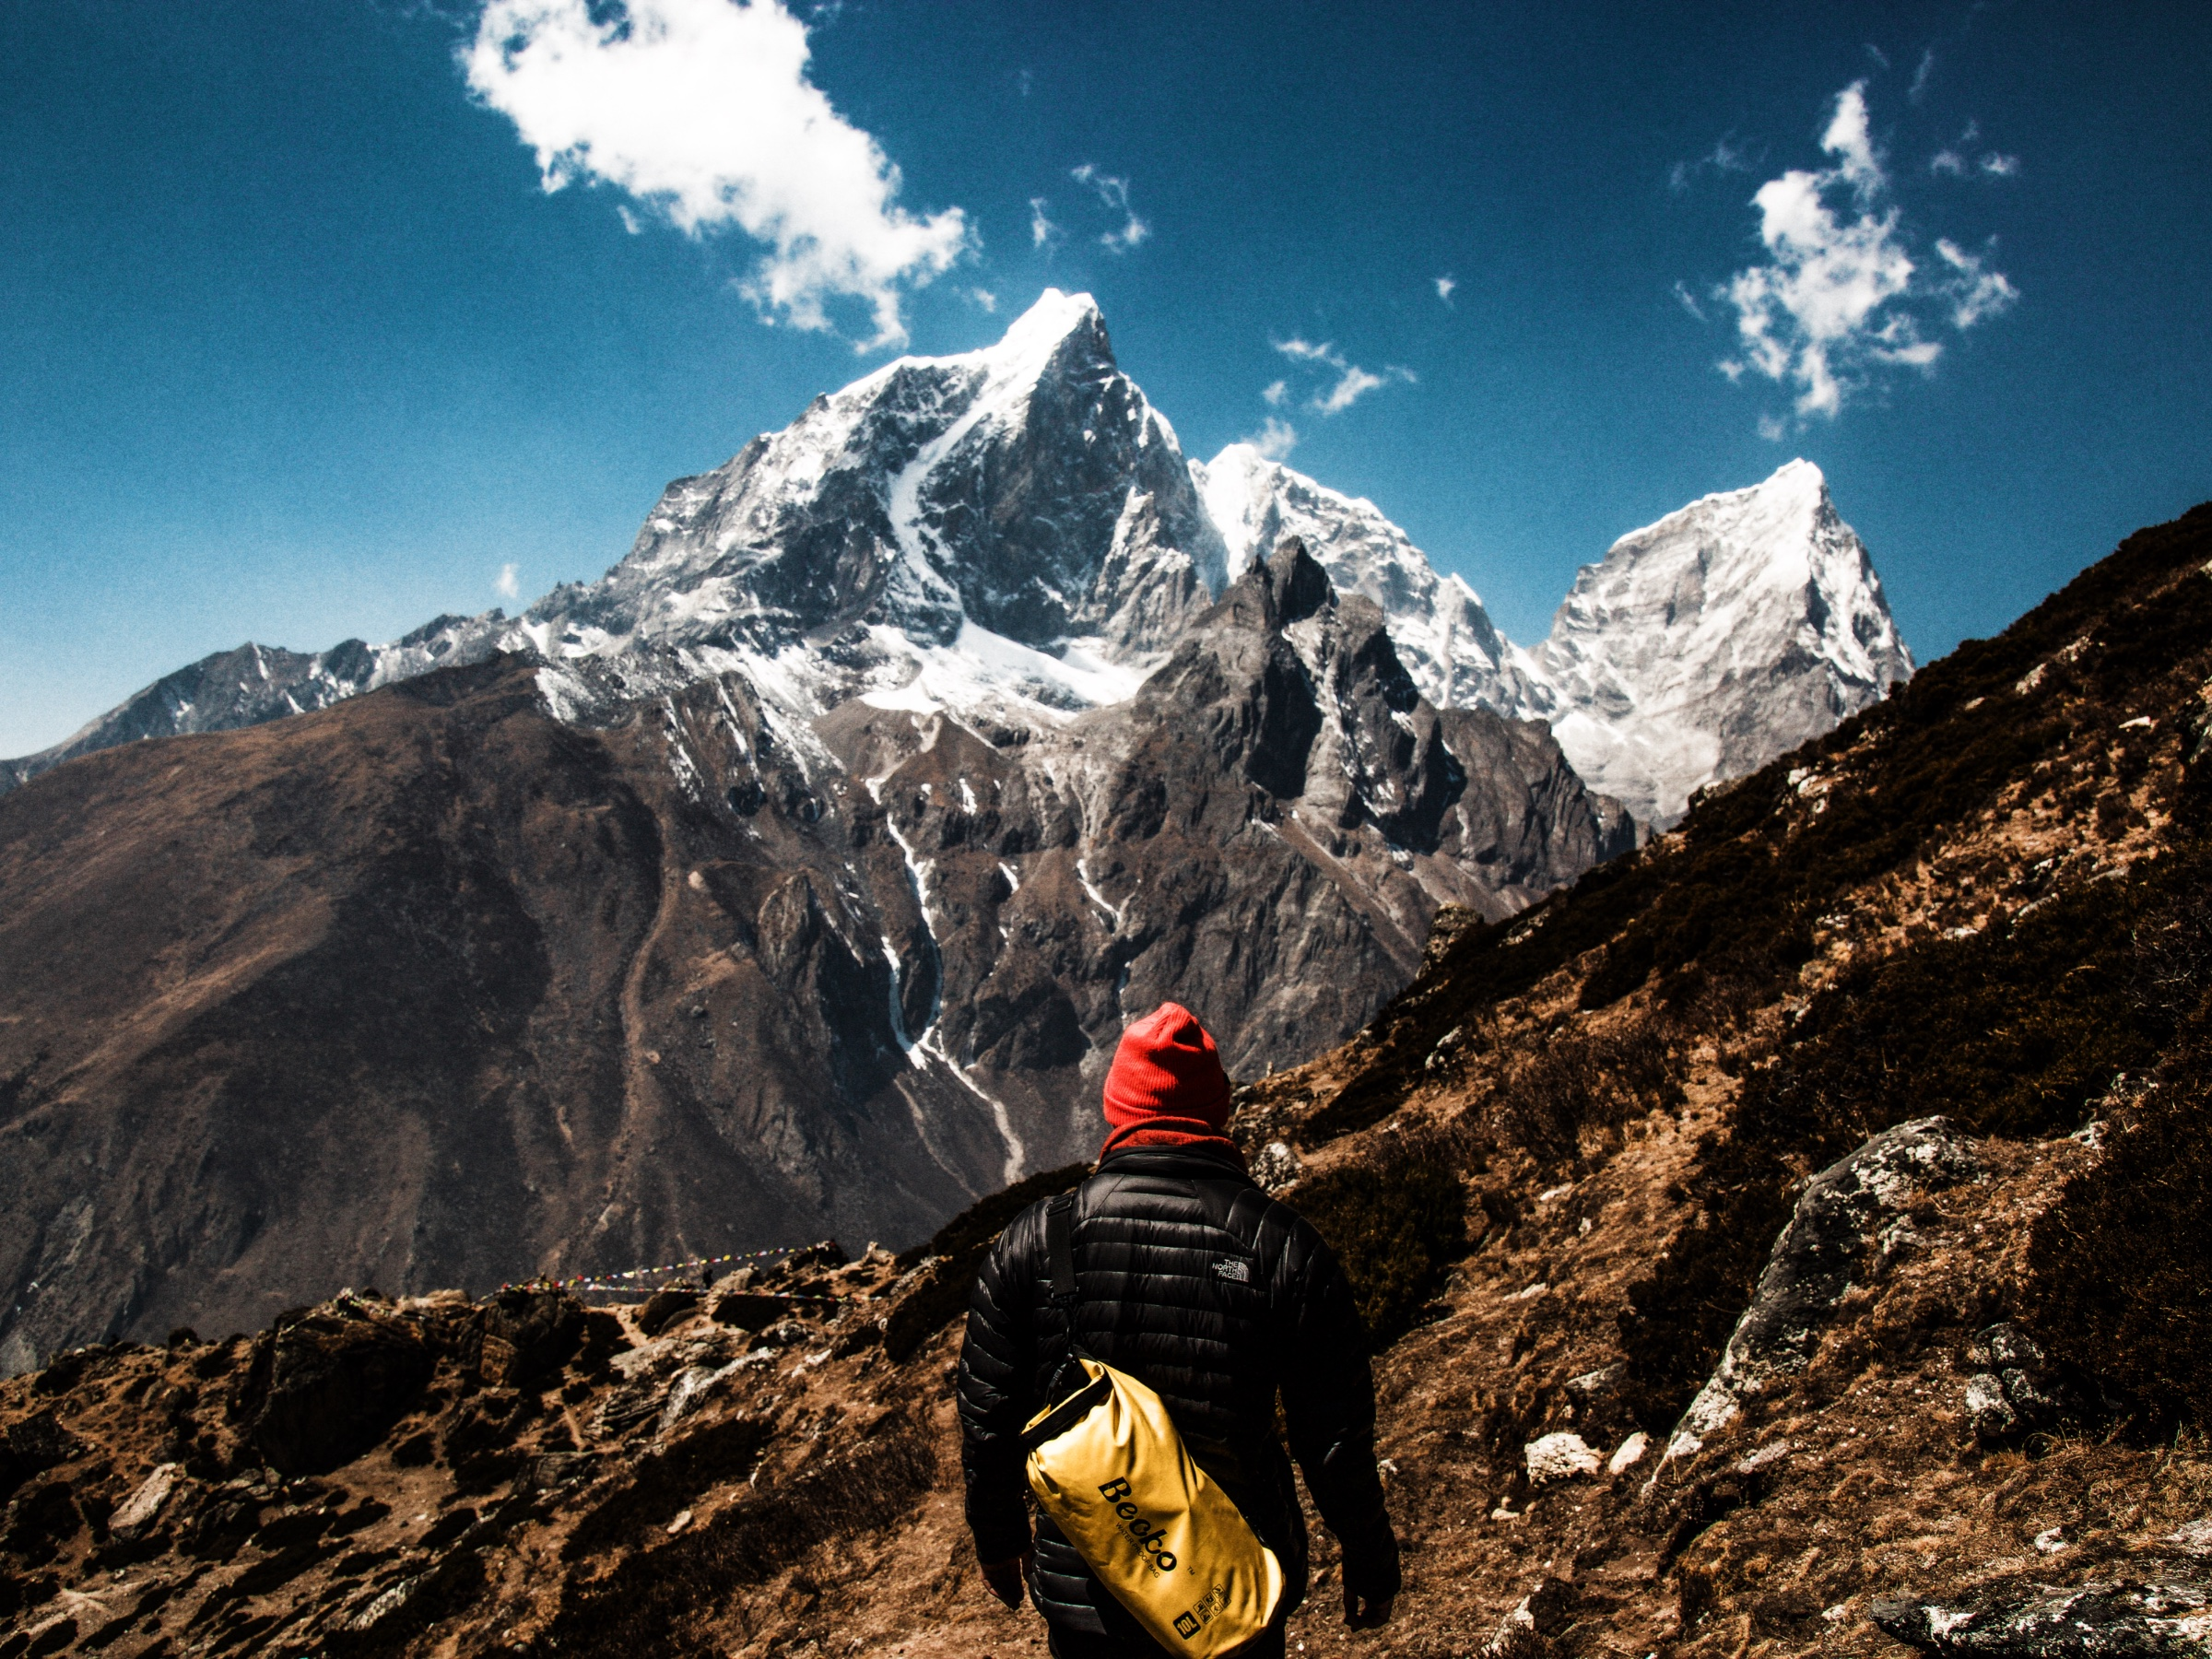 A milestone on the path to the Everest Mountains. Image credit: Christopher Burns / Unsplash